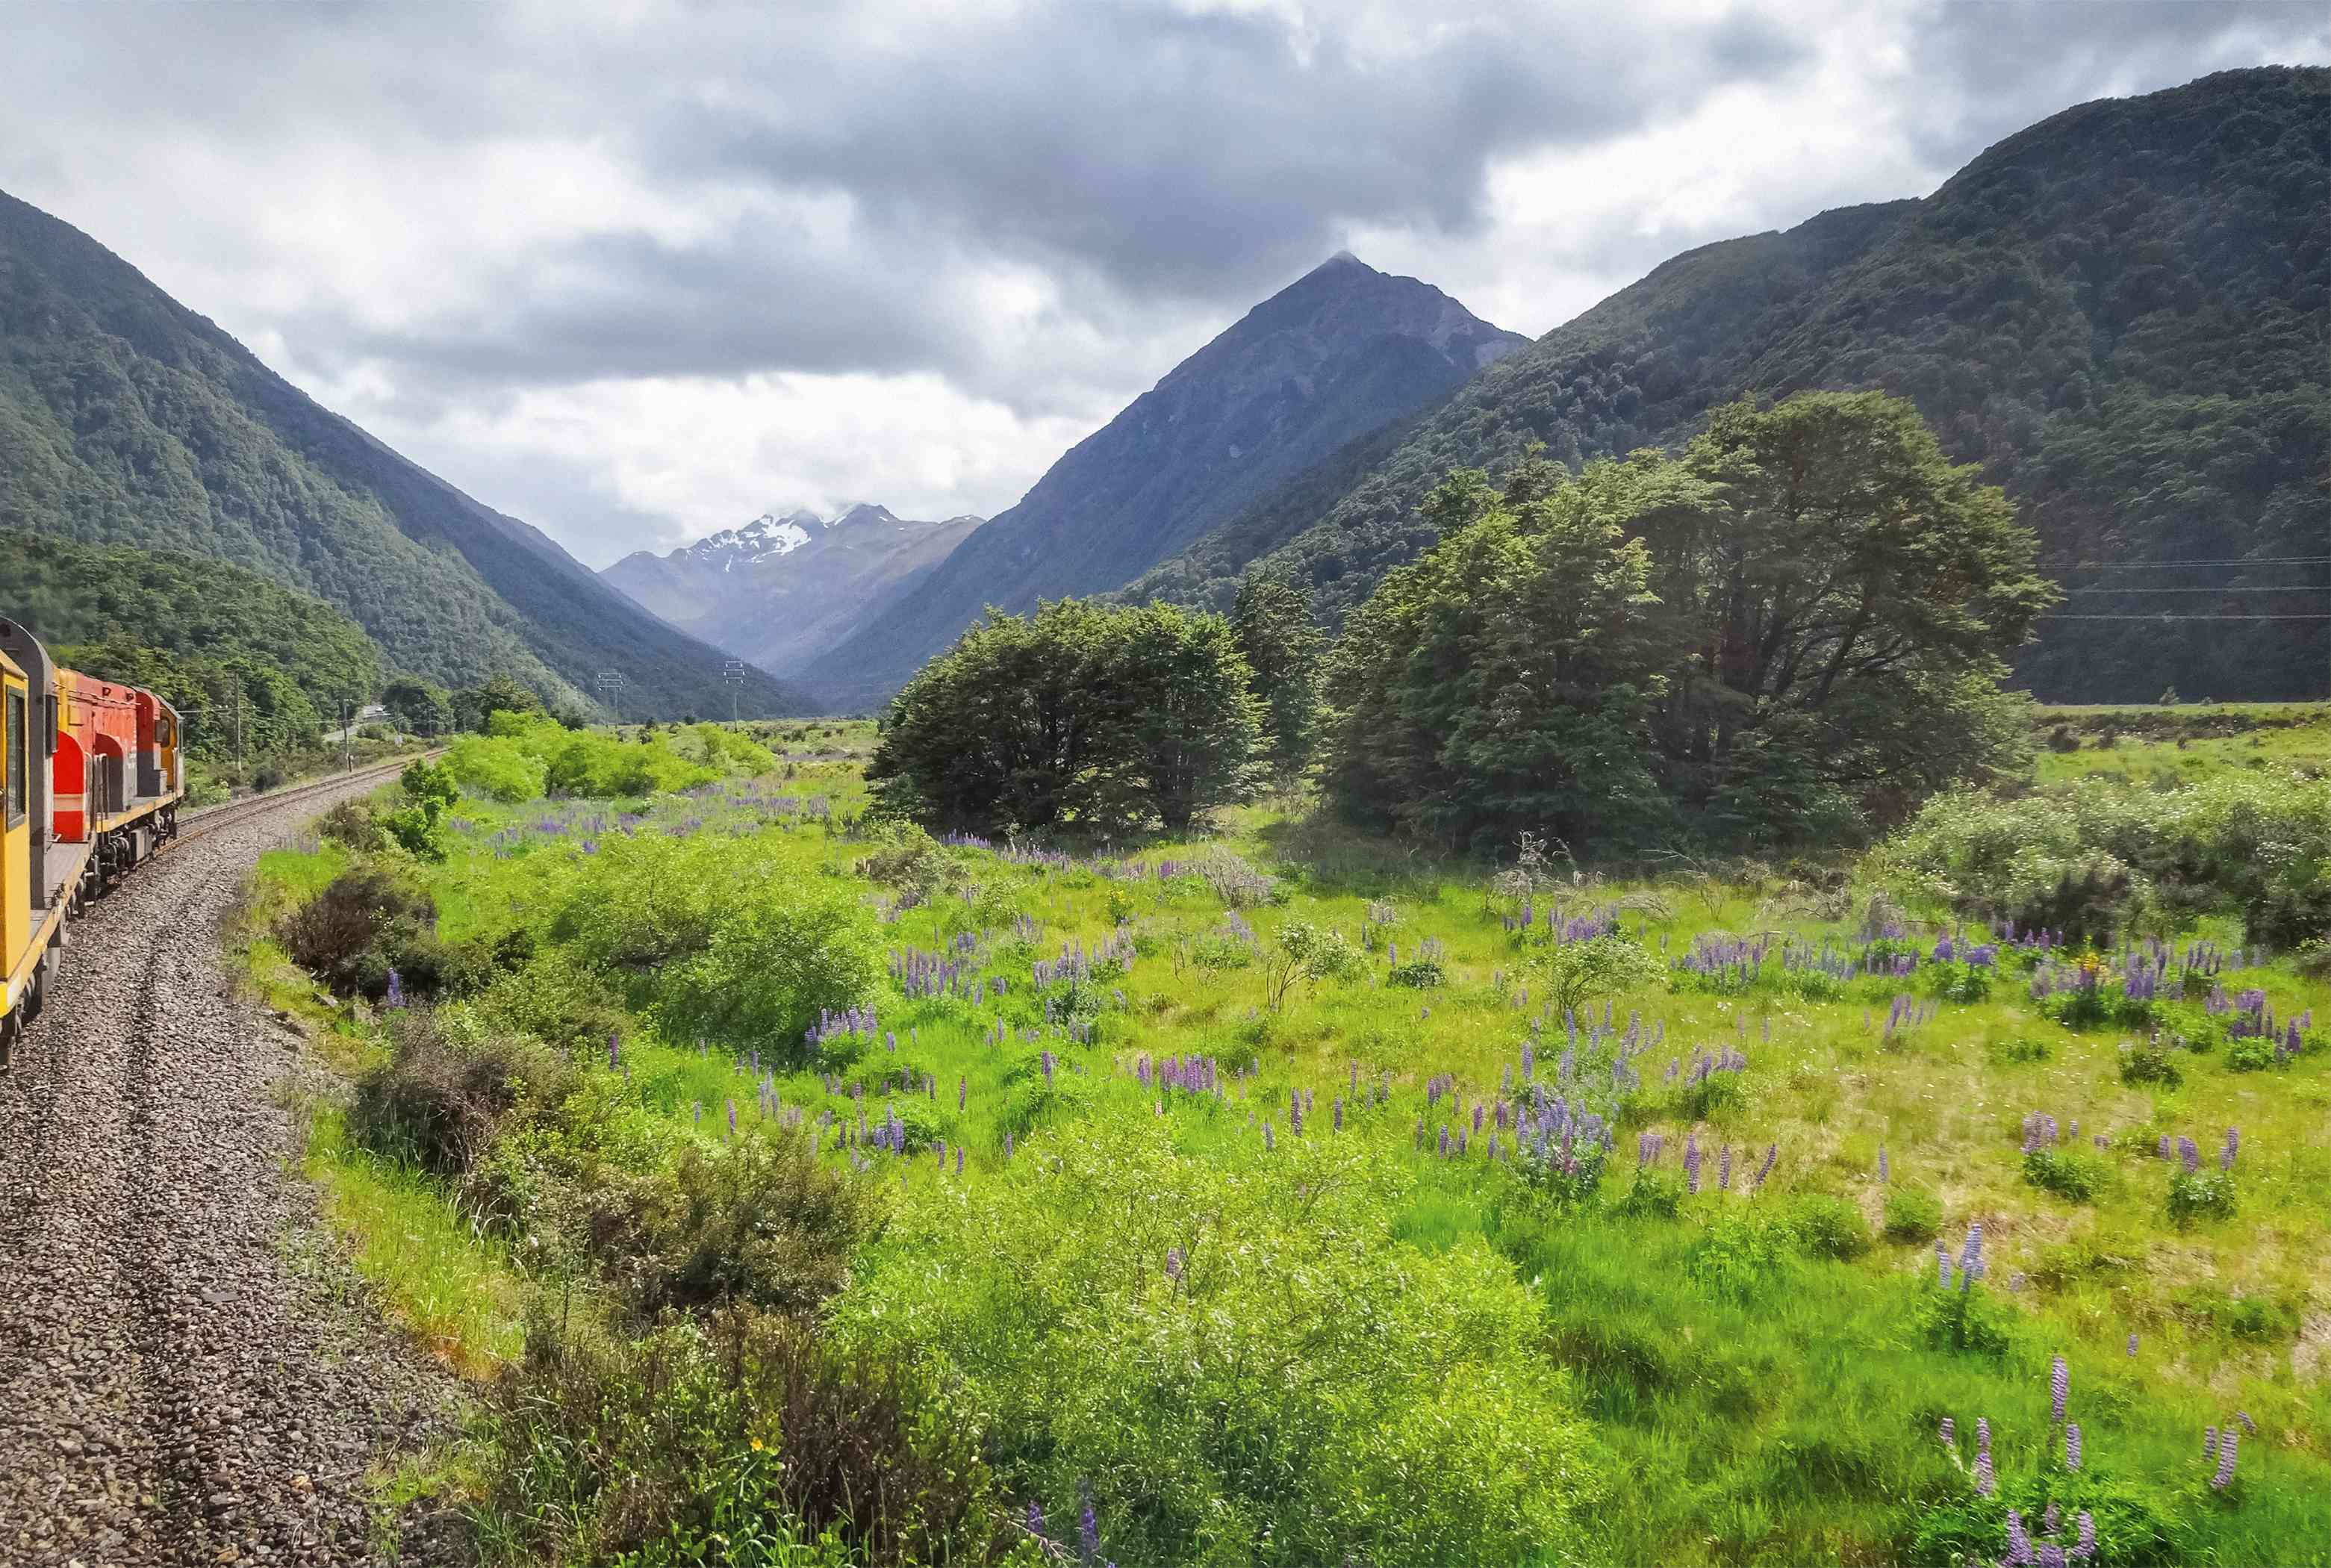 View of mountains and grassy fields from them Tranzalpine Railway and train on South Island New Zealand